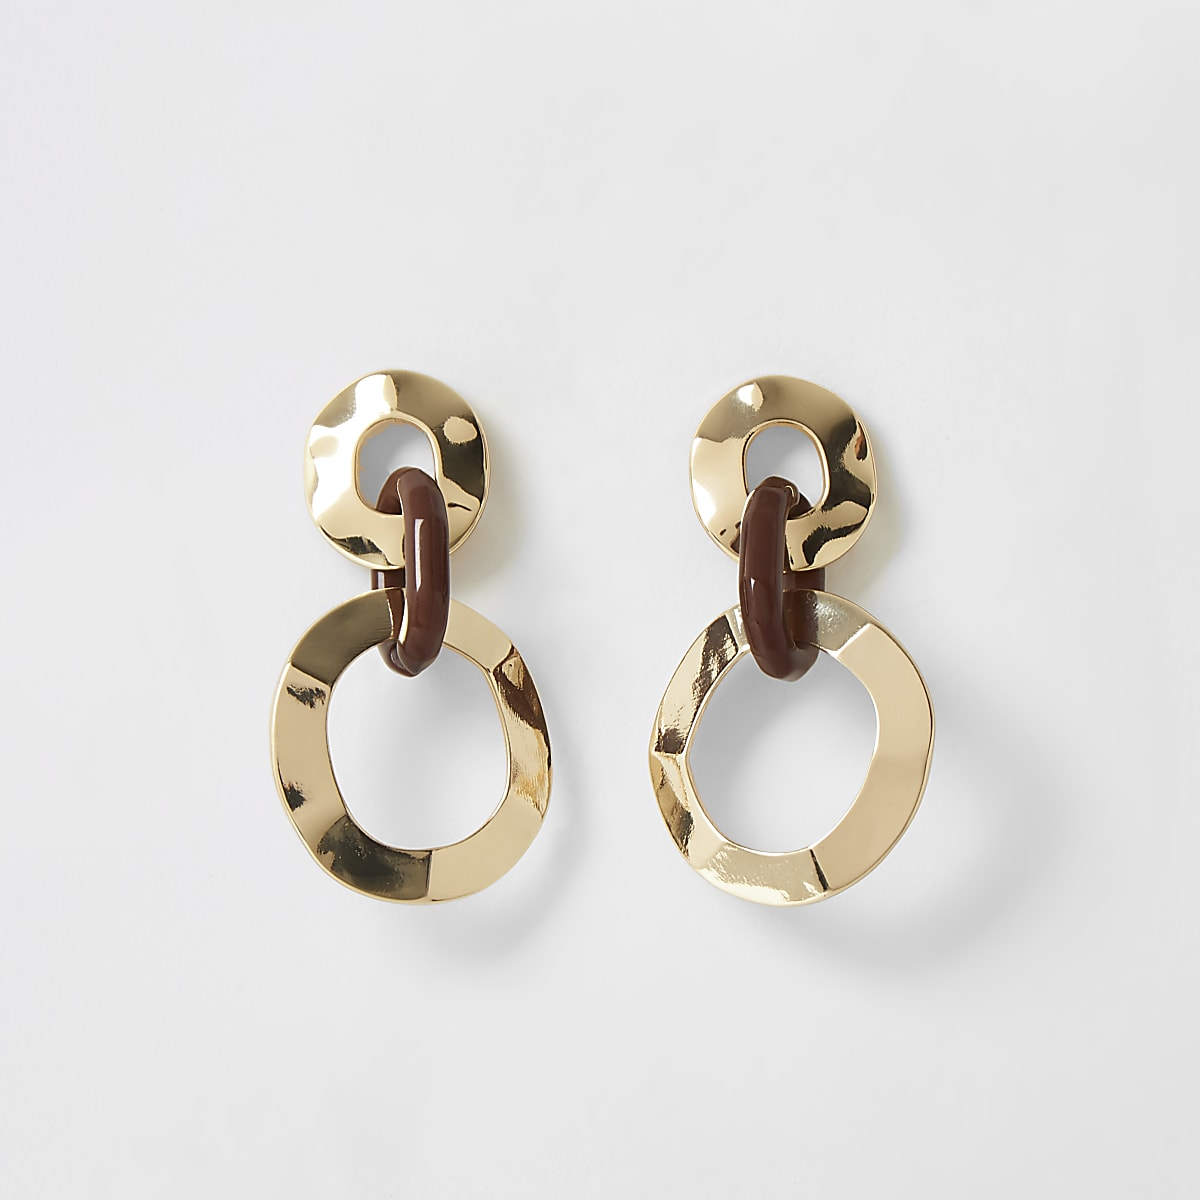 Gold color interlinked drop earrings